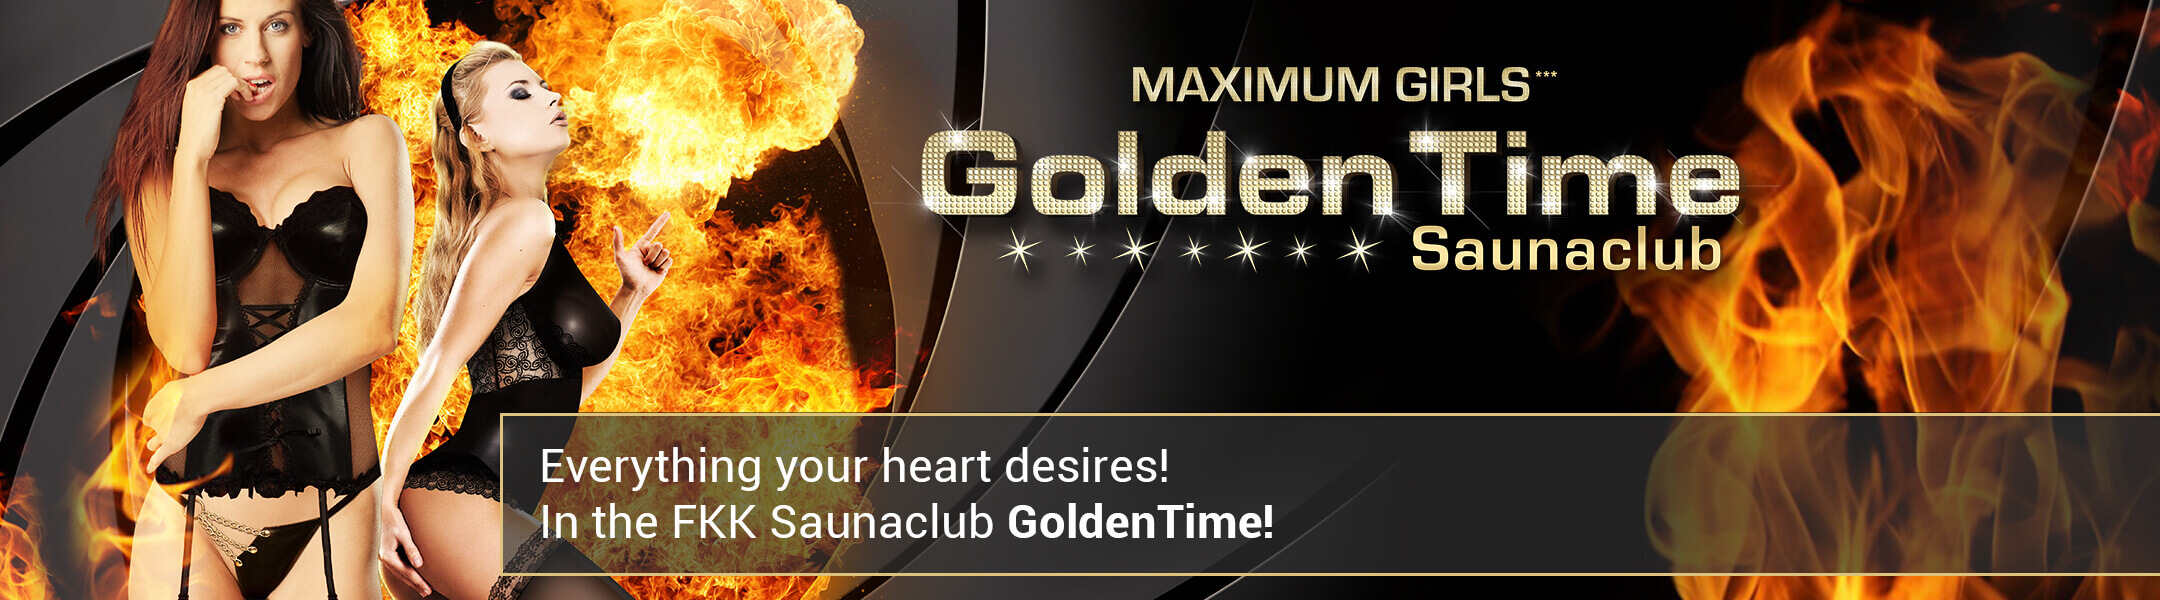 Everything your heart desires! In the FKK Saunaclub GoldenTime!